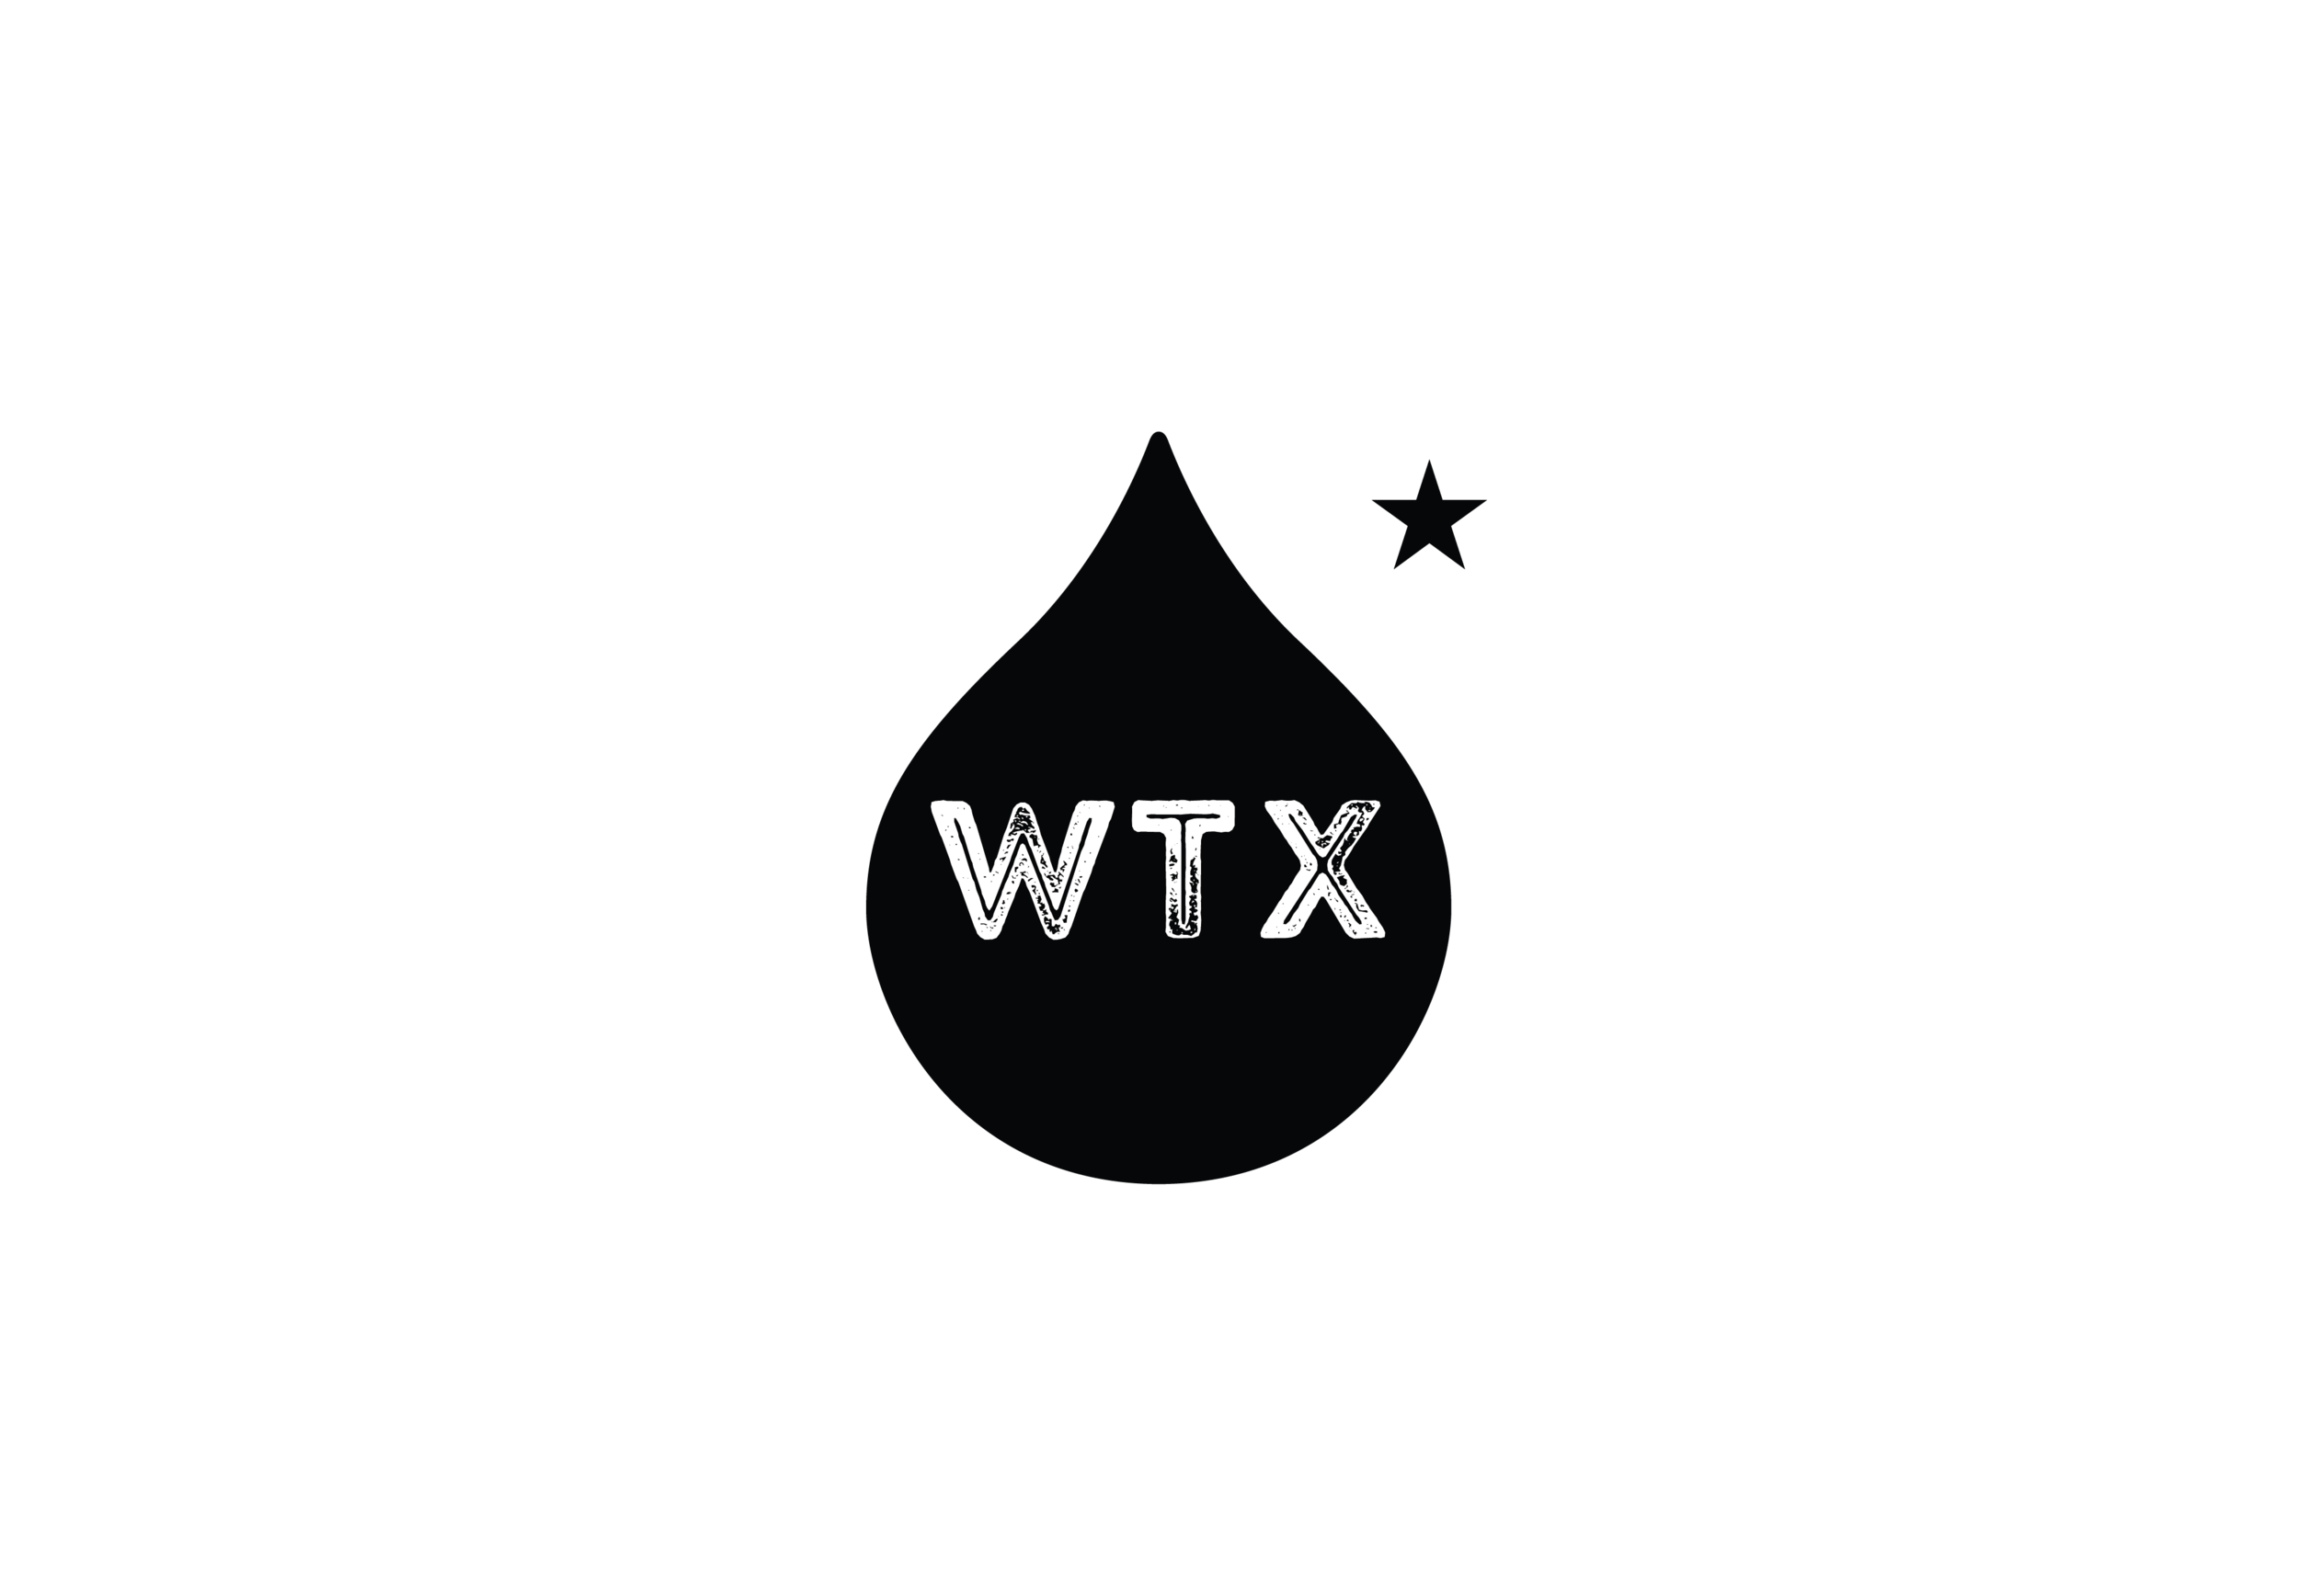 WTX_logo_Marks_working_2016-01.png